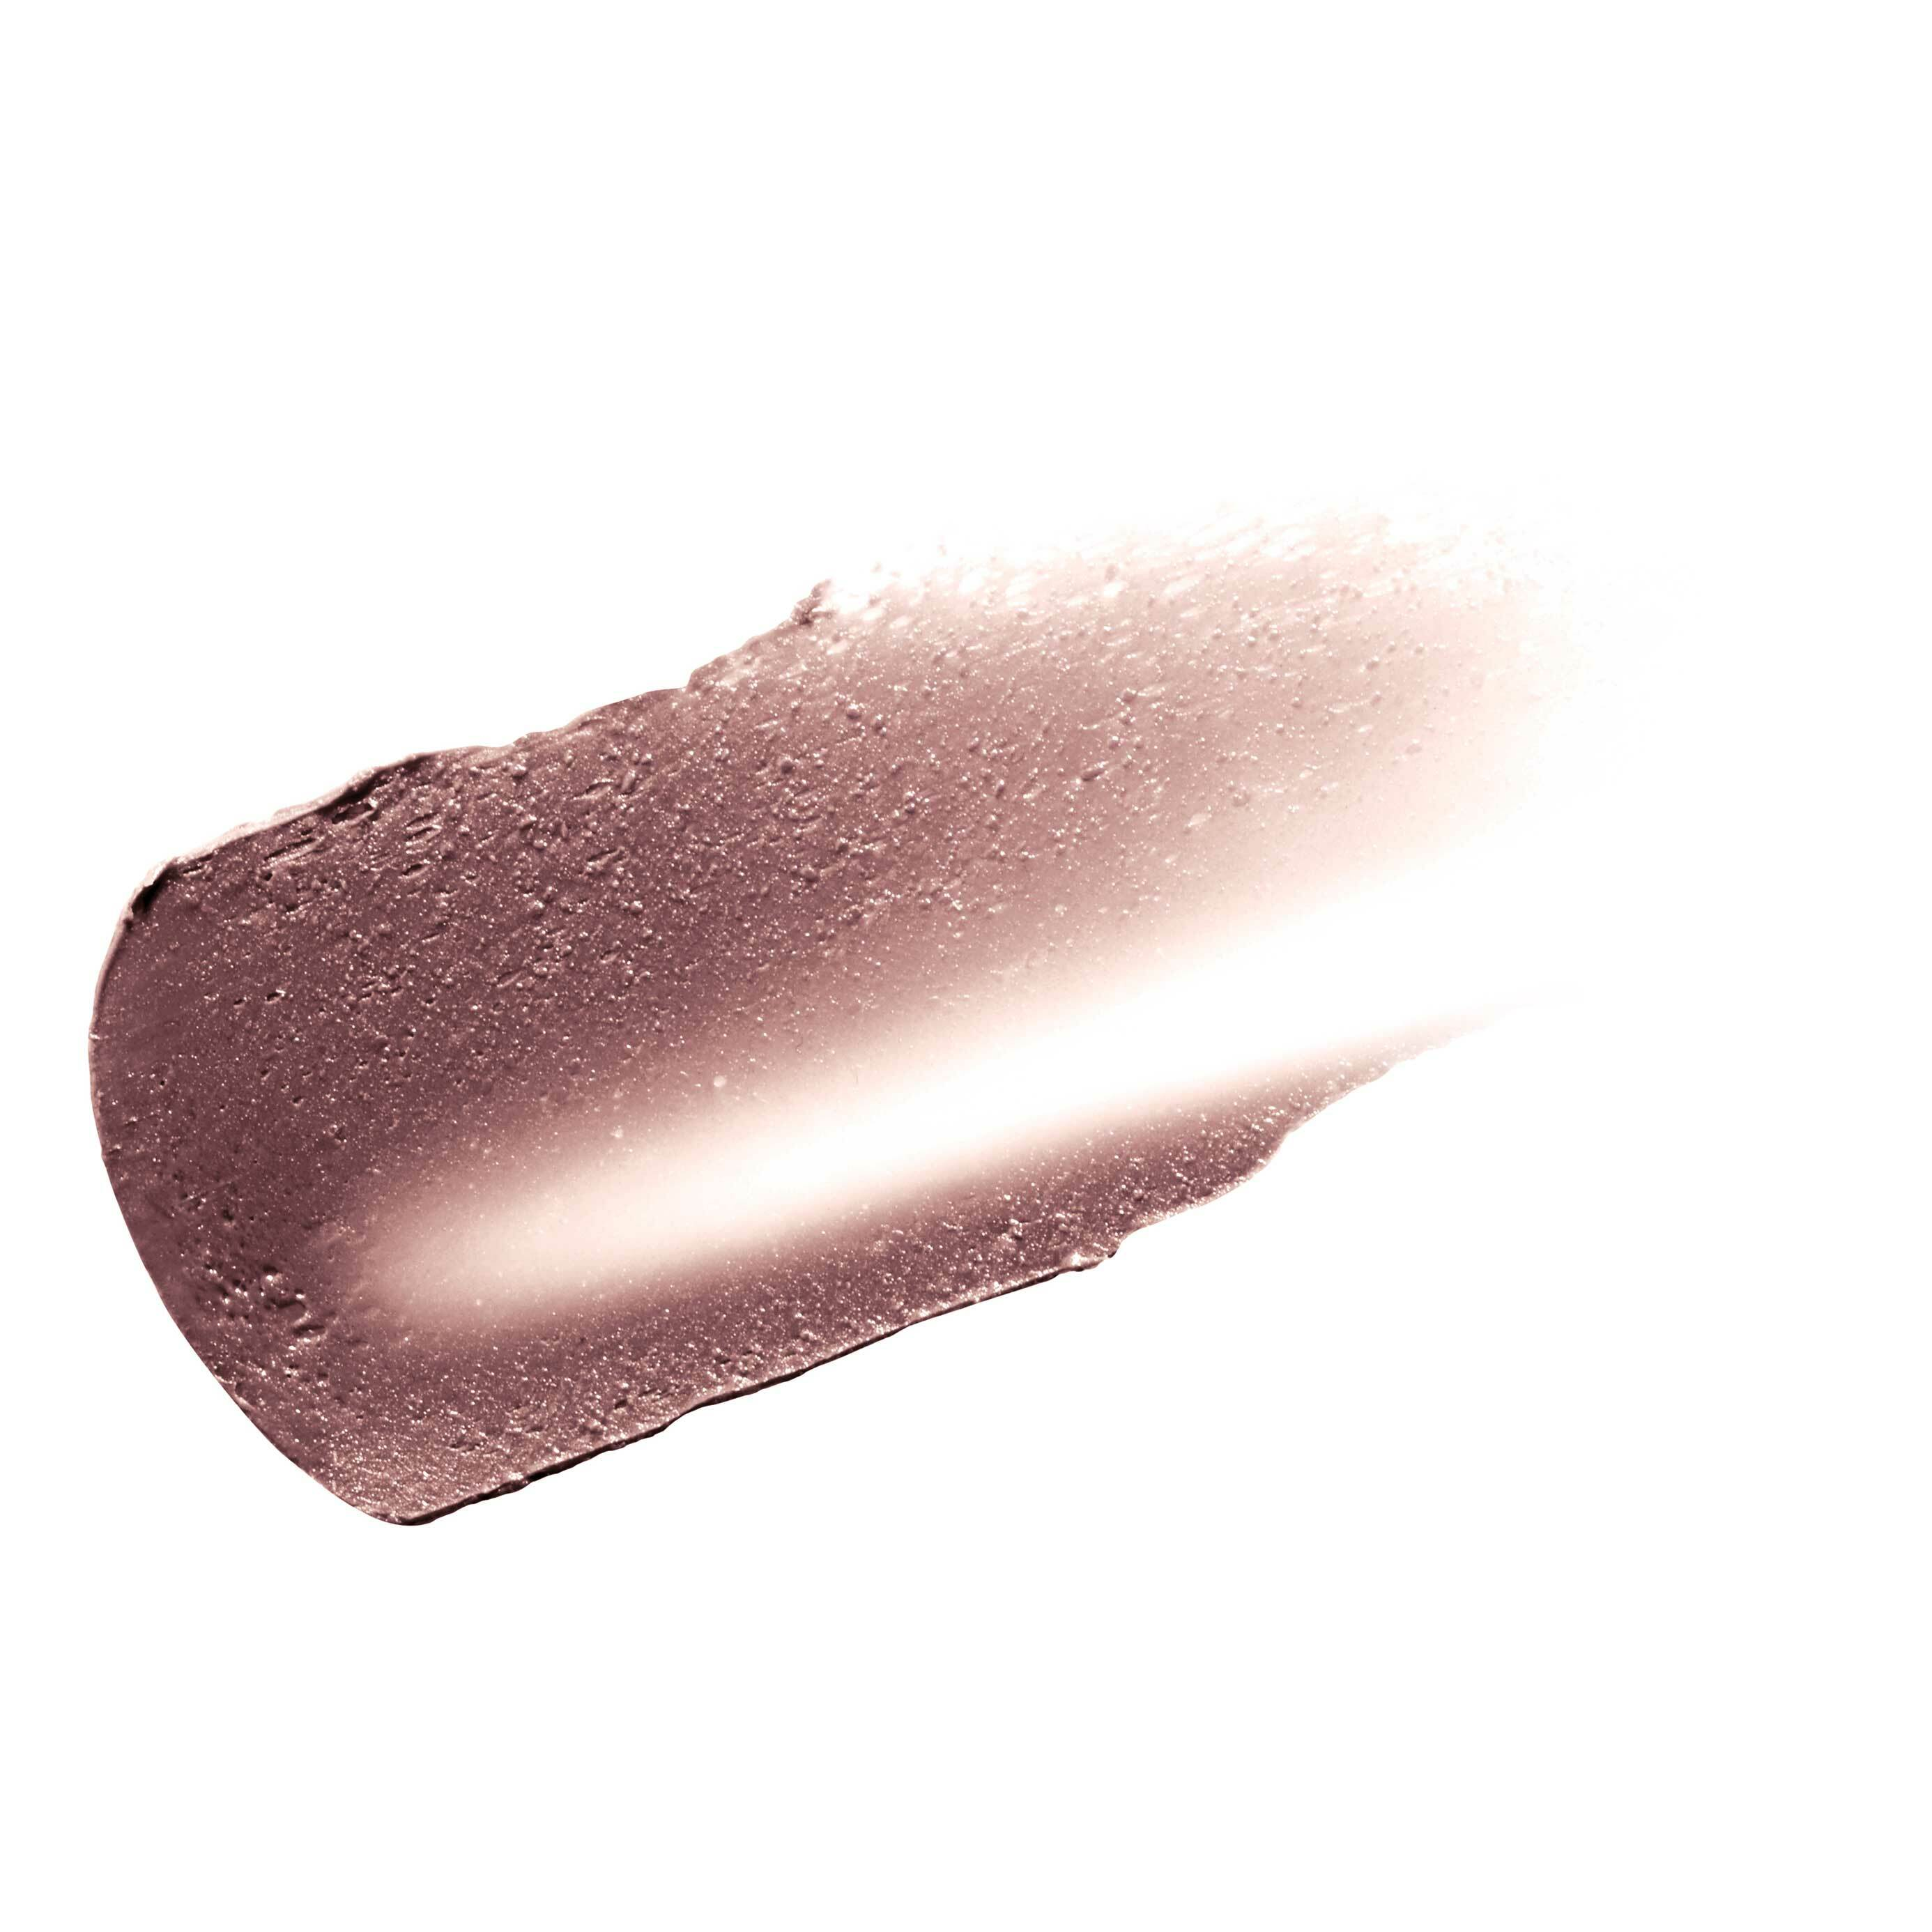 Tease - shimmery plum brown